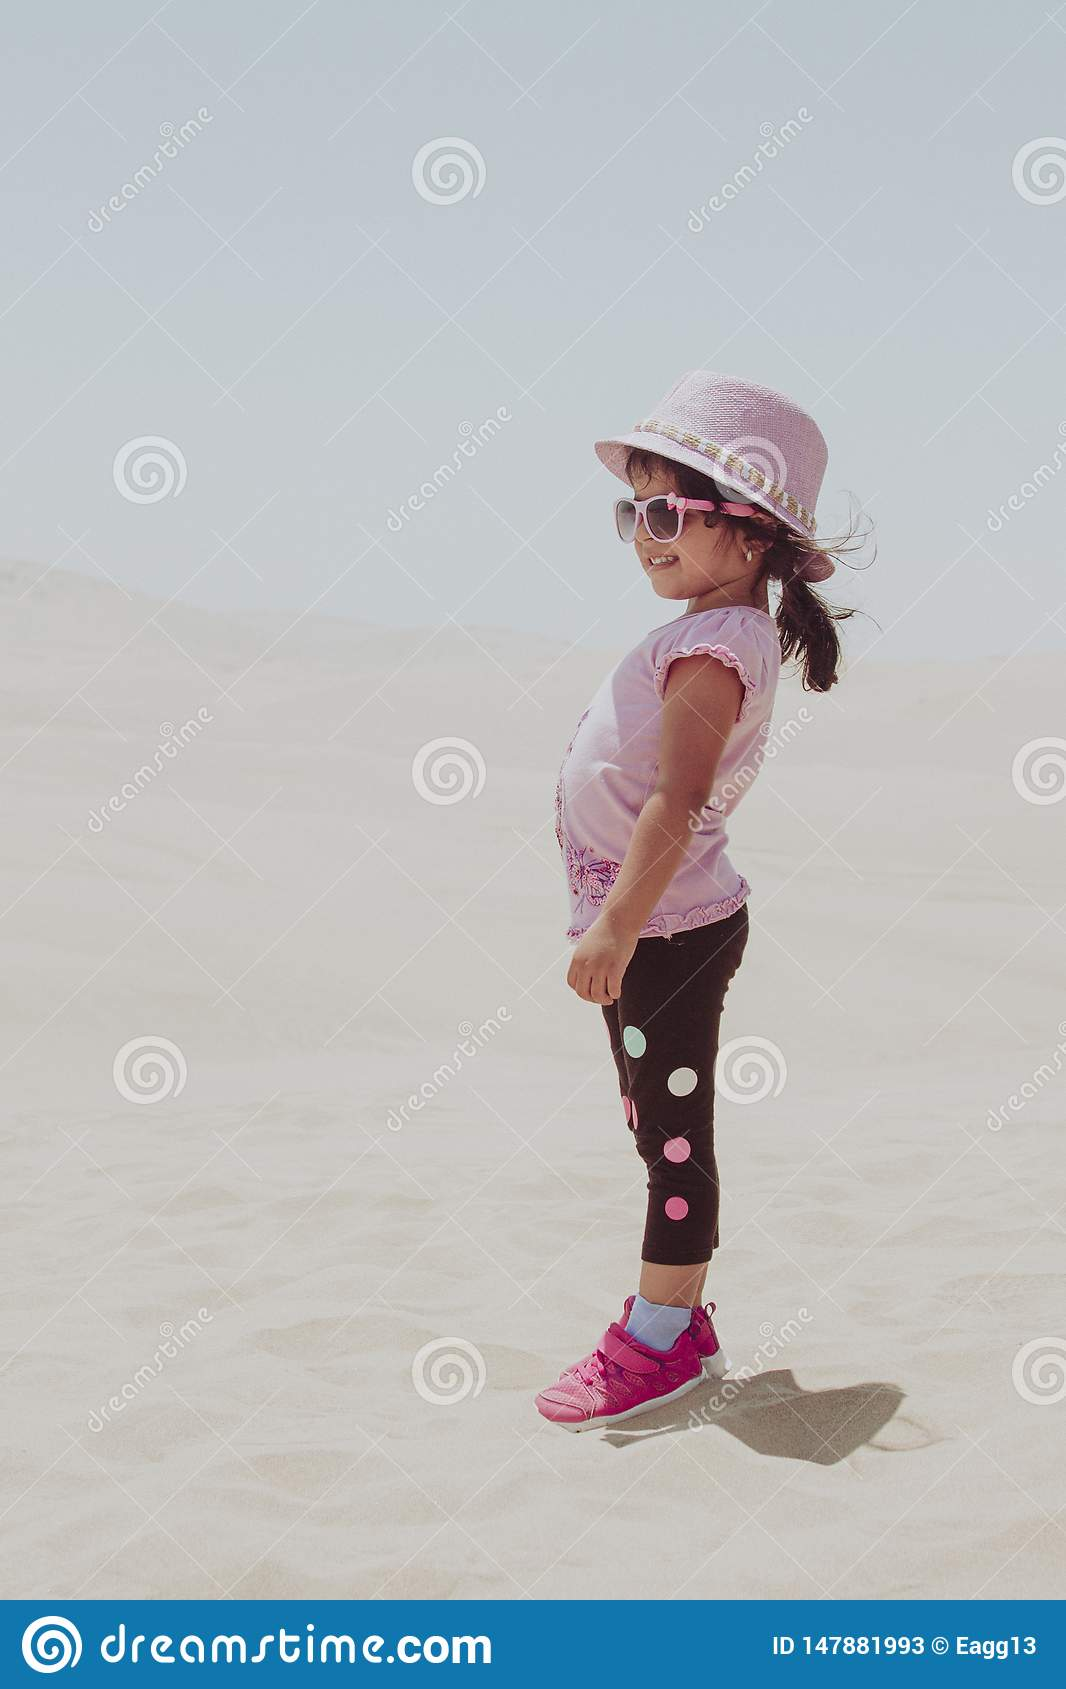 Cute little girl playing in the dunes